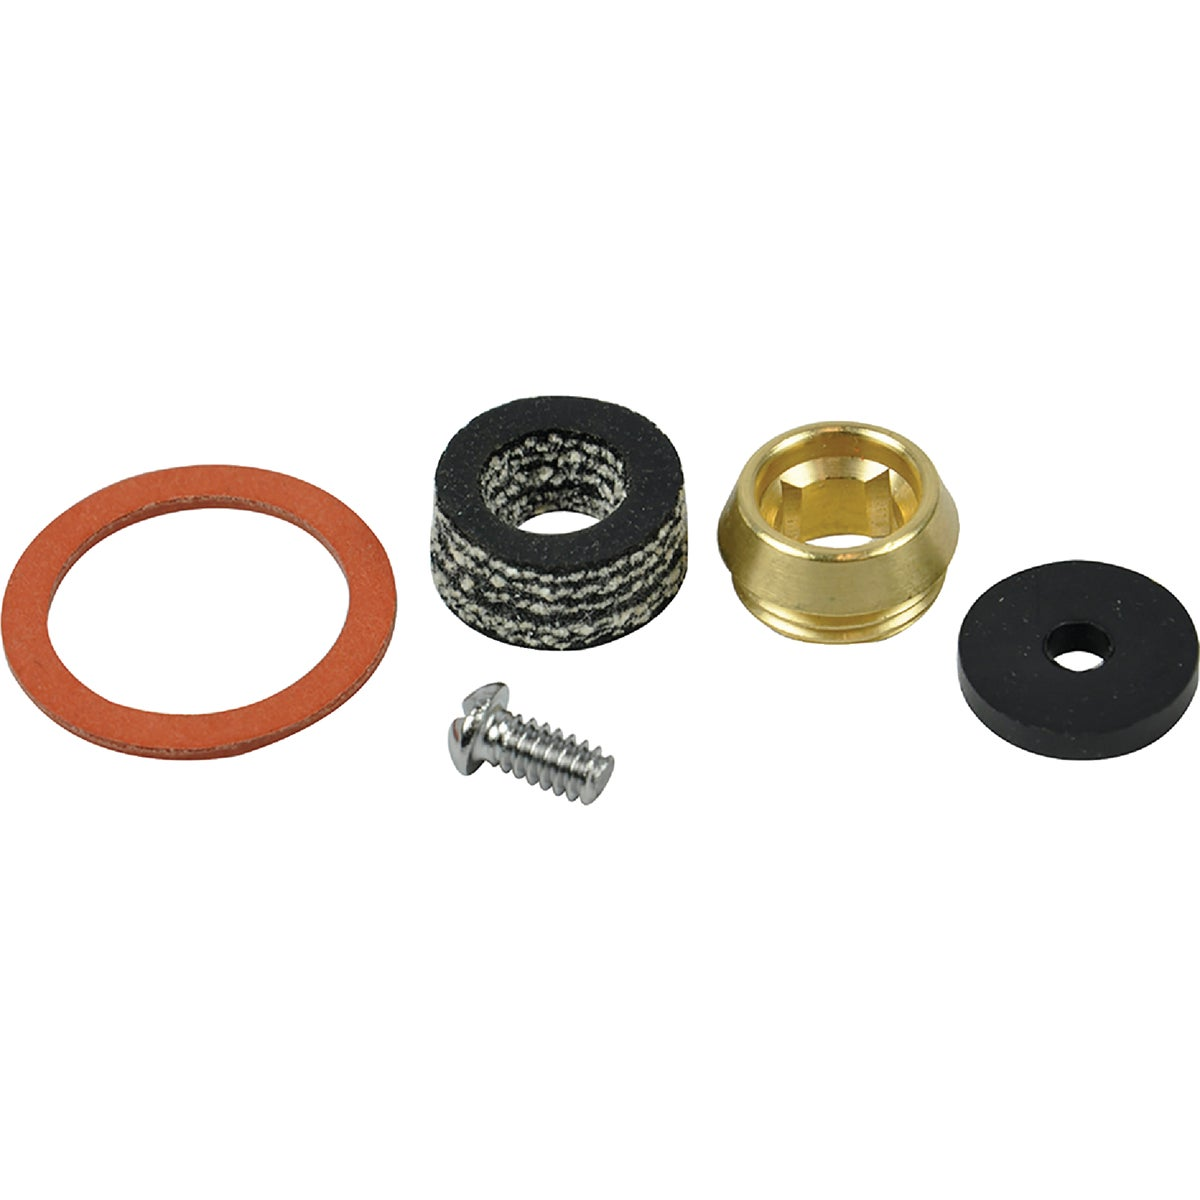 STEM REPAIR KIT